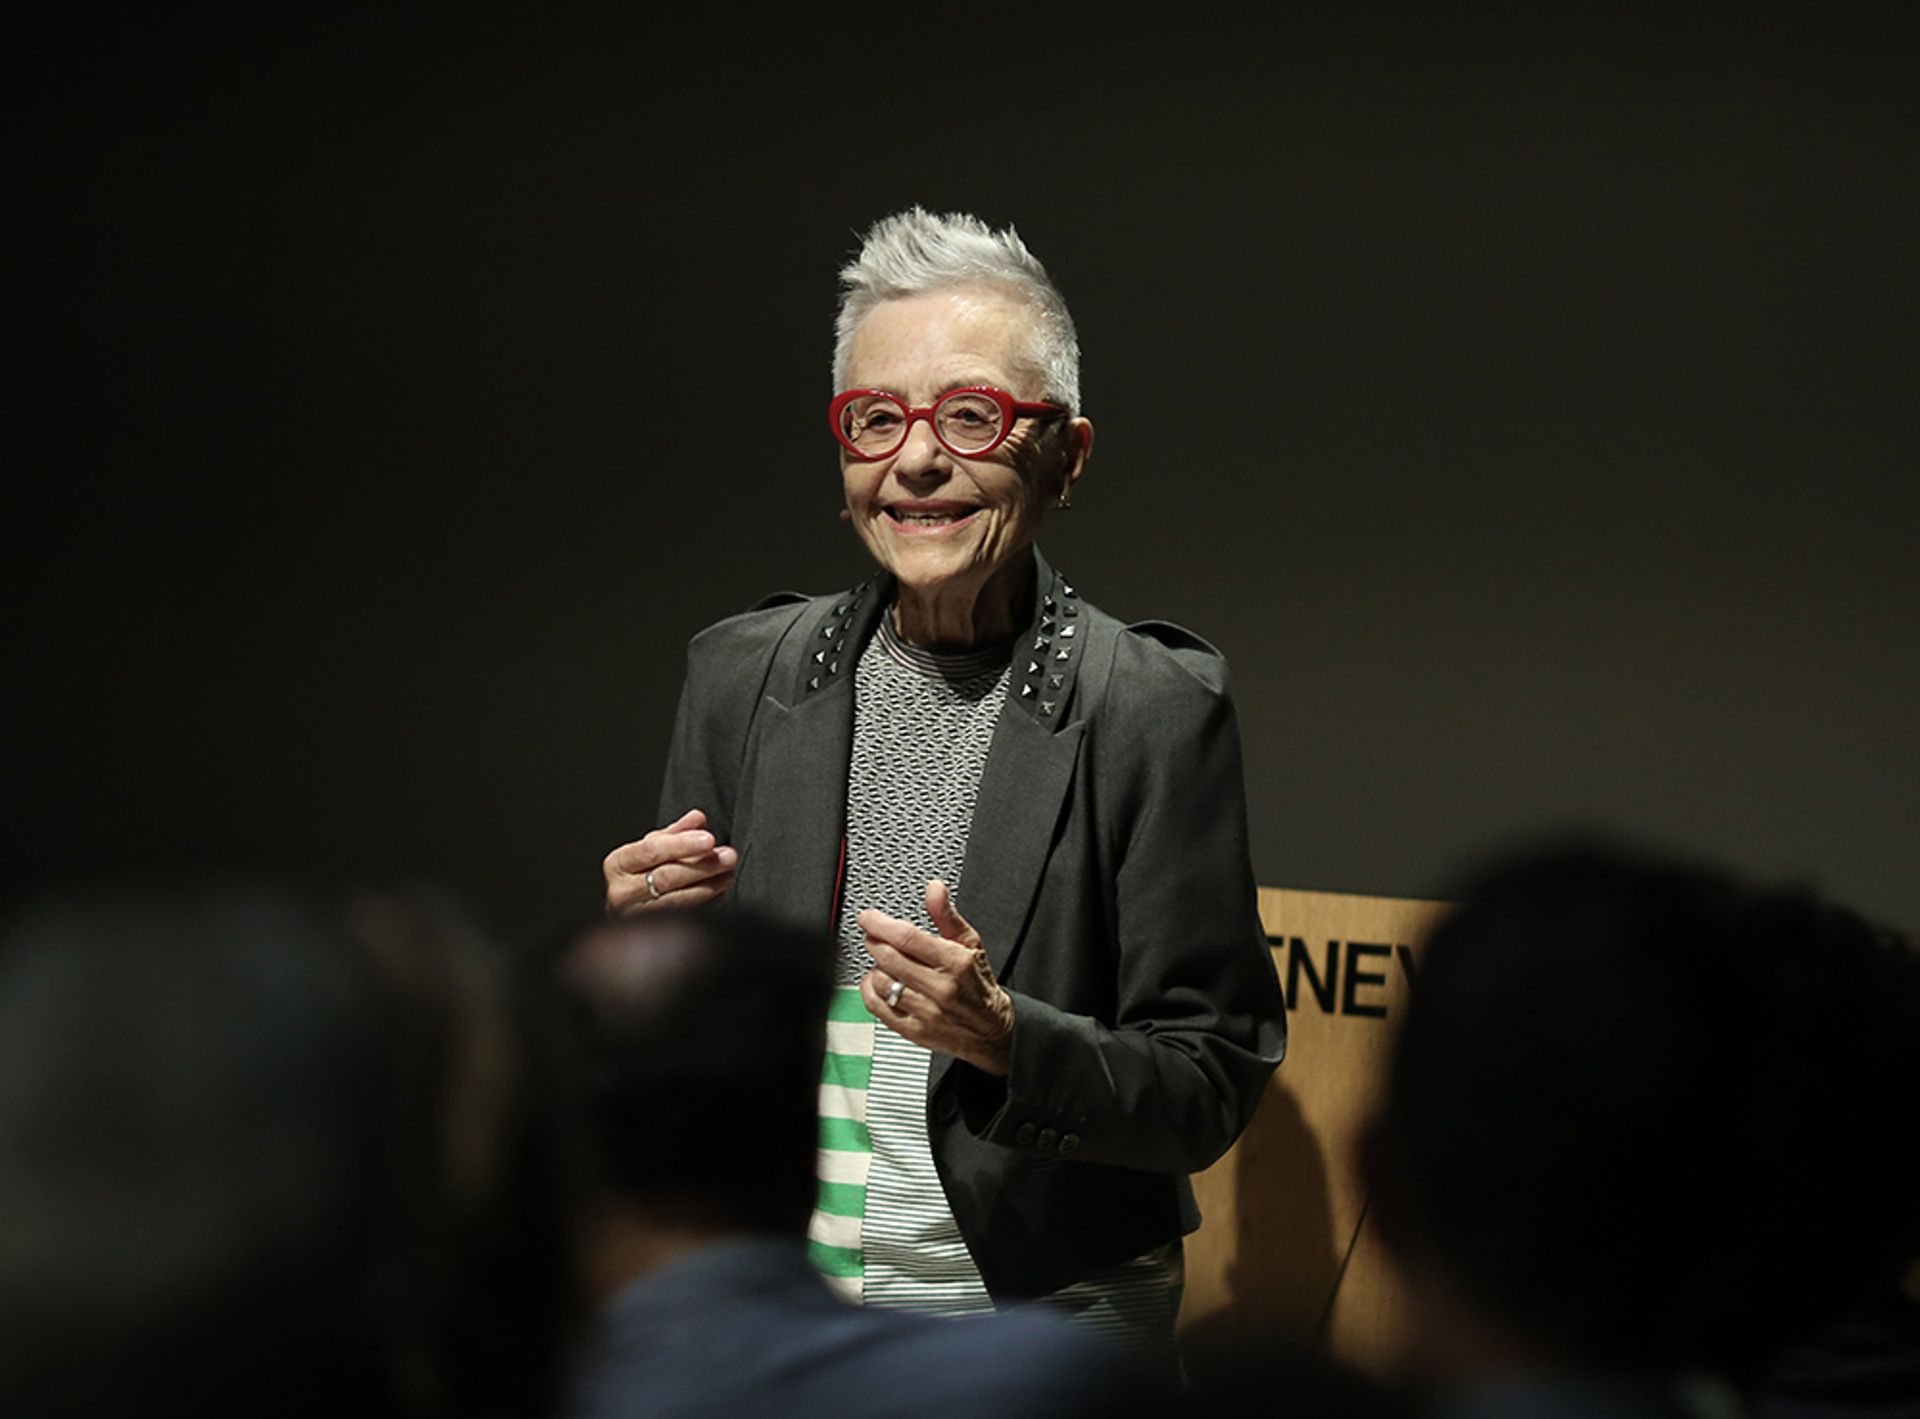 Barbara Hammer at her lecture-performance The Art of Dying or (Palliative Art Making in an Age of Anxiety) at the Whitney Museum Photo: Paula Court